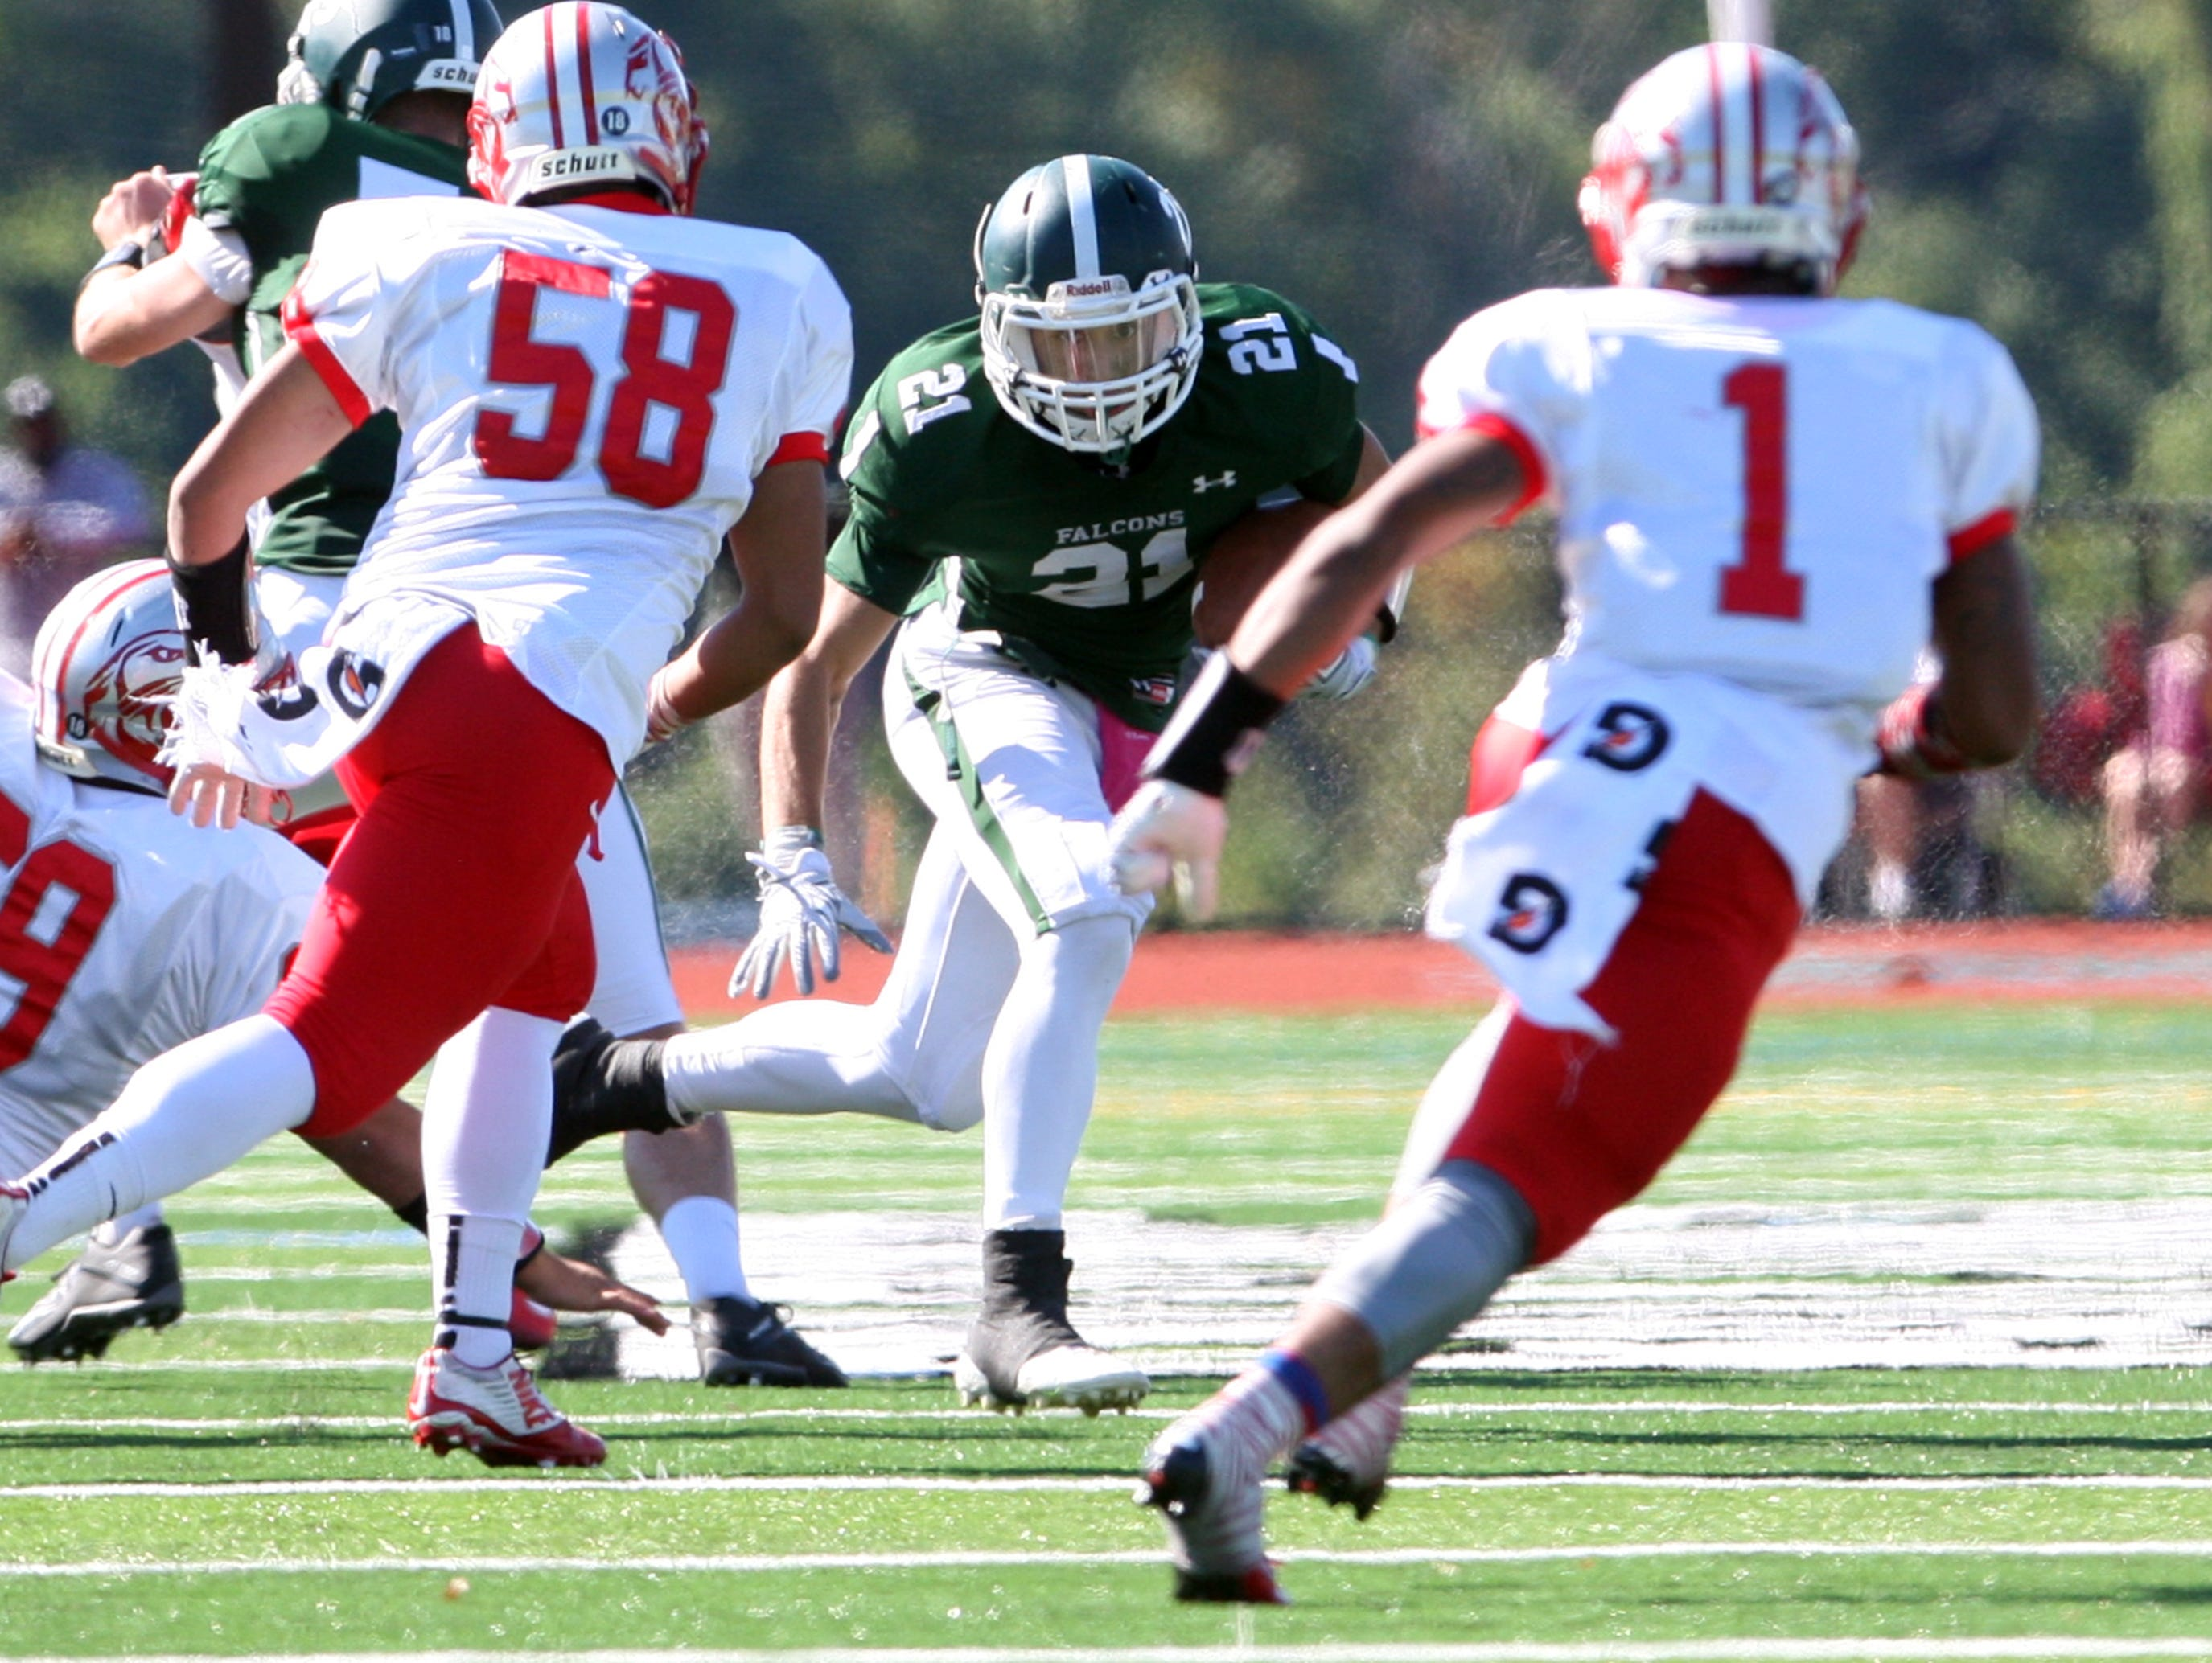 Action photos from the Perth Amboy High School at St. Joseph football game held at St. Joseph's new turf field in Metuhen on Saturday October 10, 2015. Here St. Joseph's (center) # 21 Emmanuel Resto looks for running room pas Perth Amboy defenders.